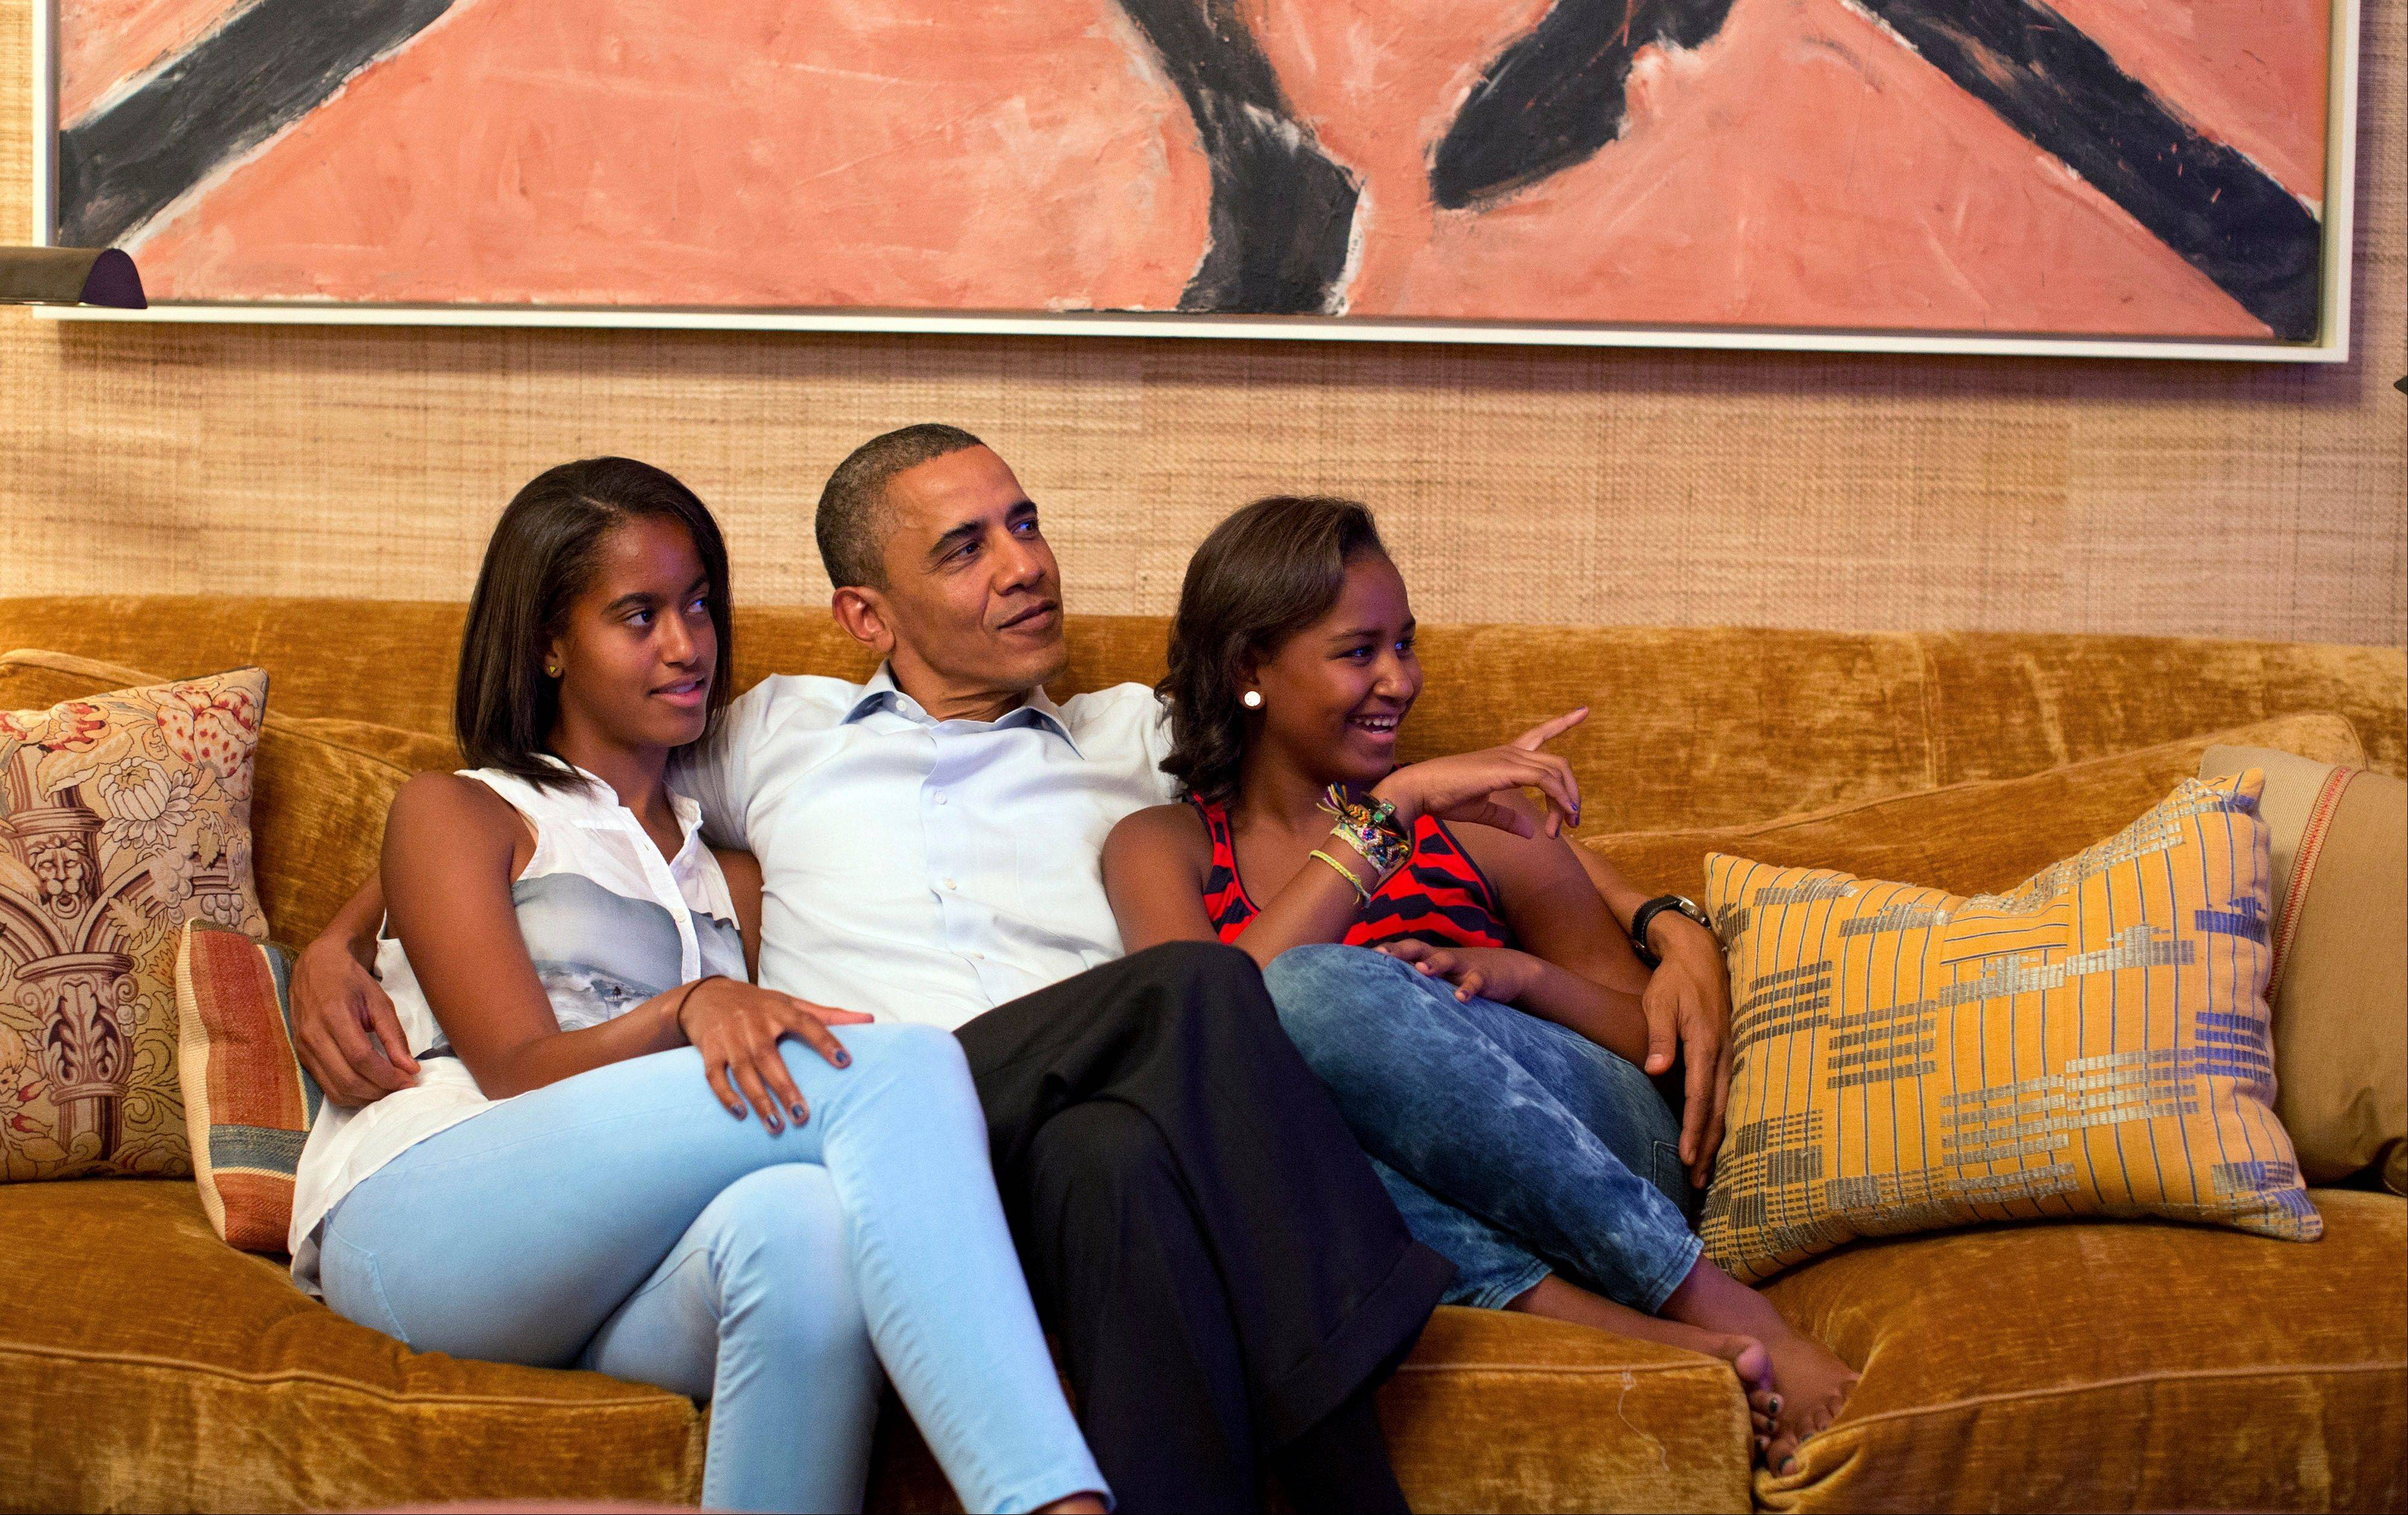 In this Tuesday image originally released by the White House, President Barack Obama and his daughters, Malia, left, and Sasha, watch first lady Michelle Obama speak on television. For many TV viewers, it will surely be a surprise to see how much the Obama daughters have grown when they appear in Charlotte Thursday night.